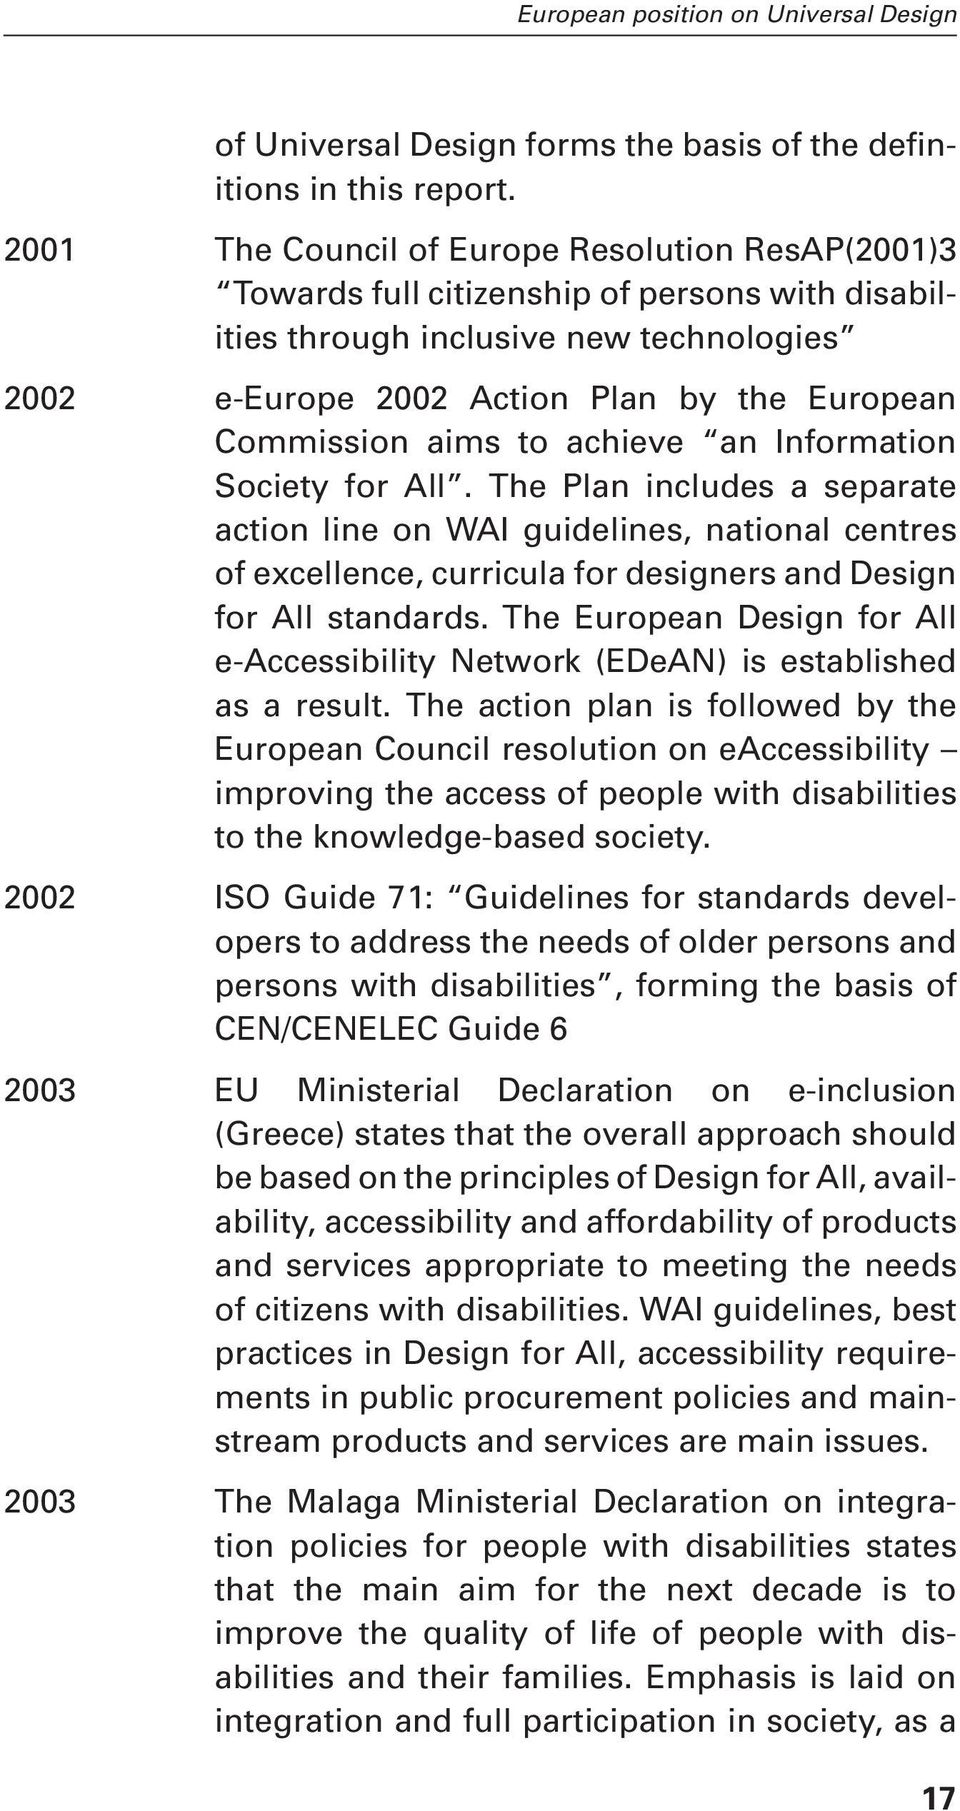 Information Society for All. The Plan includes a separate action line on WAI guidelines, national centres of excellence, curricula for designers and Design for All standards.